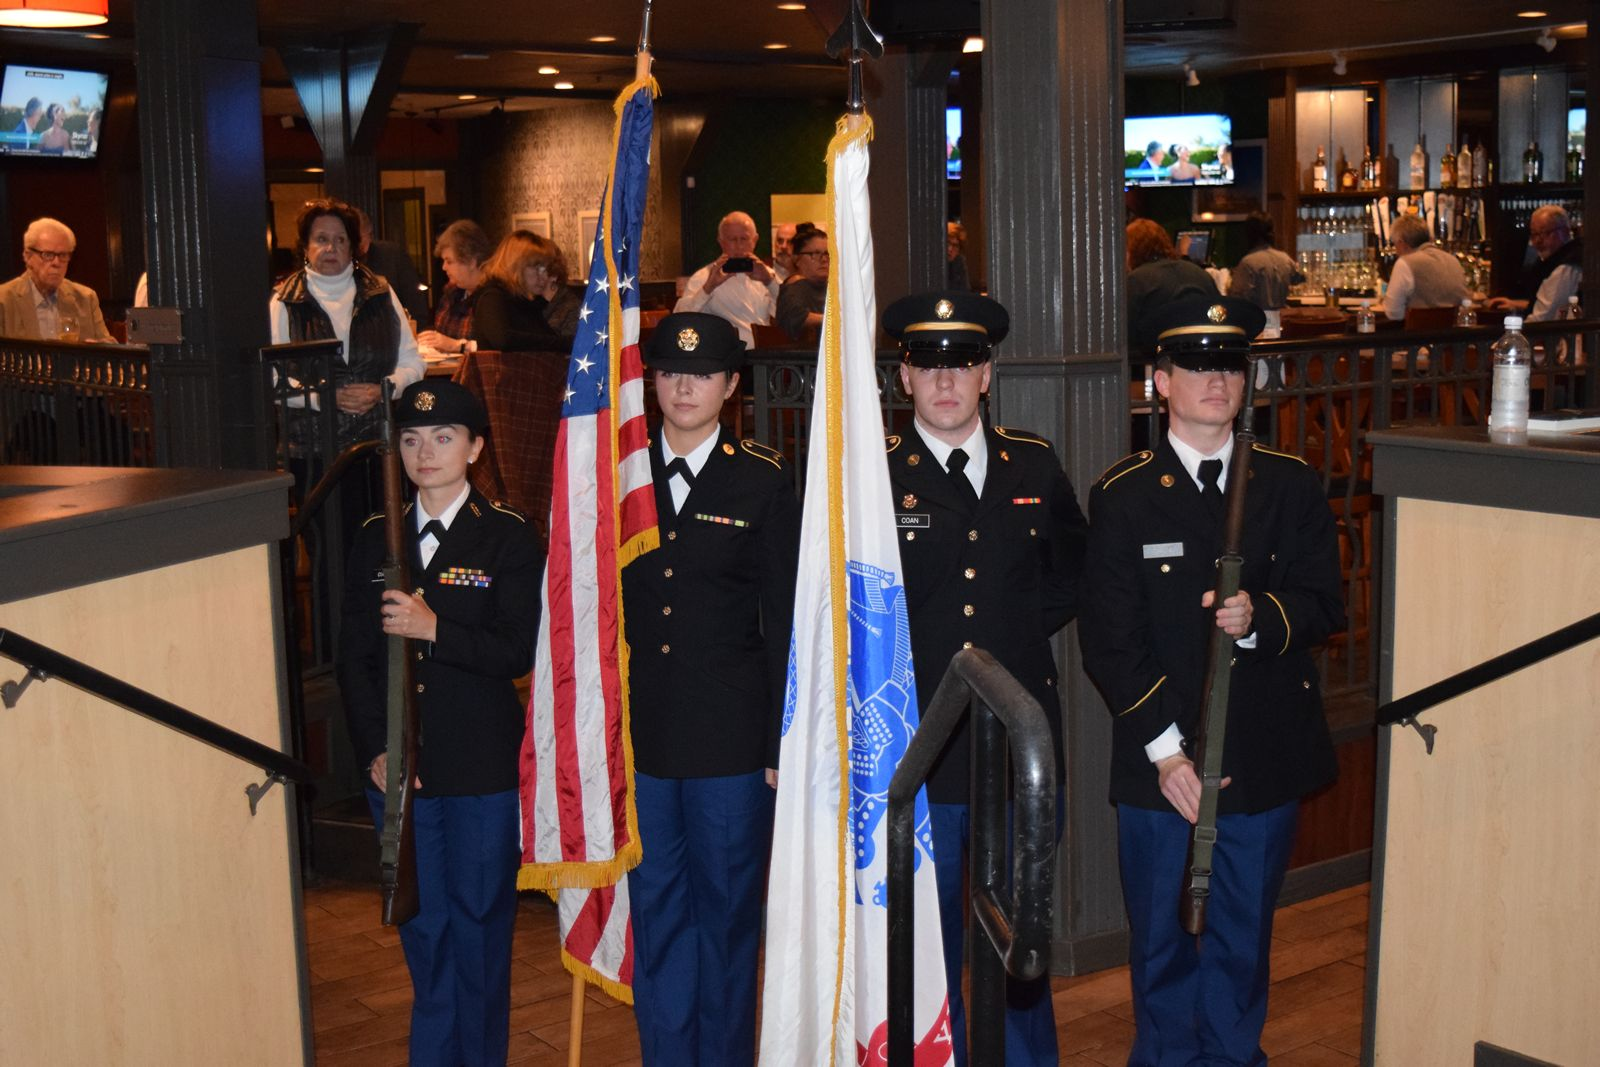 The Vanderbilt Army ROTC presenting the colors.